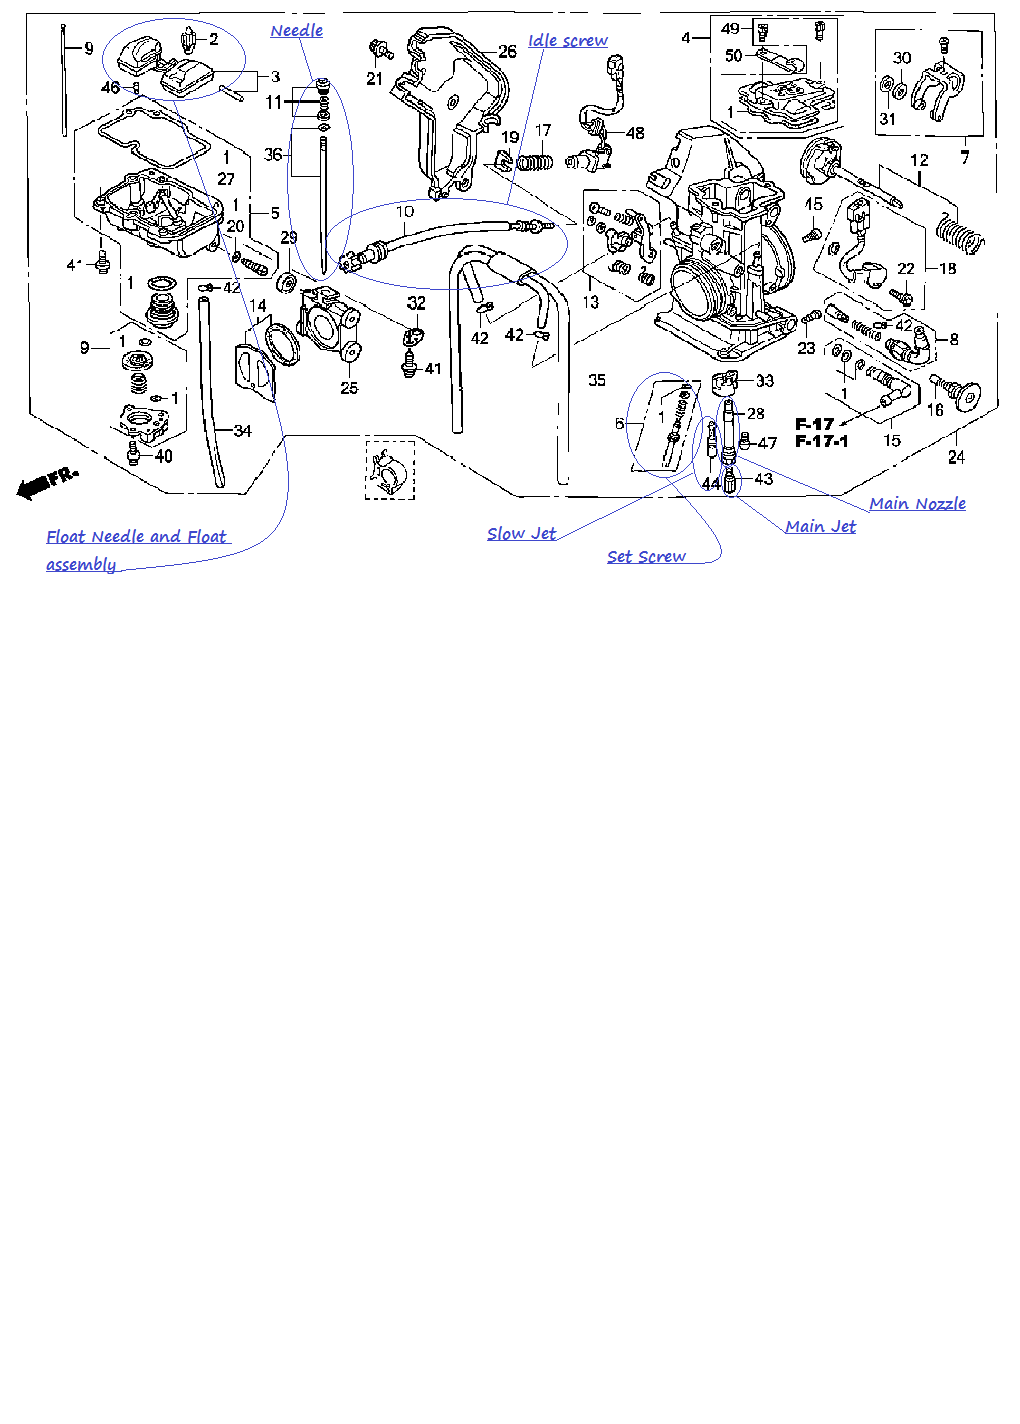 2005 honda trx450r wiring diagram schematics and wiring diagrams 2006 honda trx450r wiring diagram hid on a kicker trx